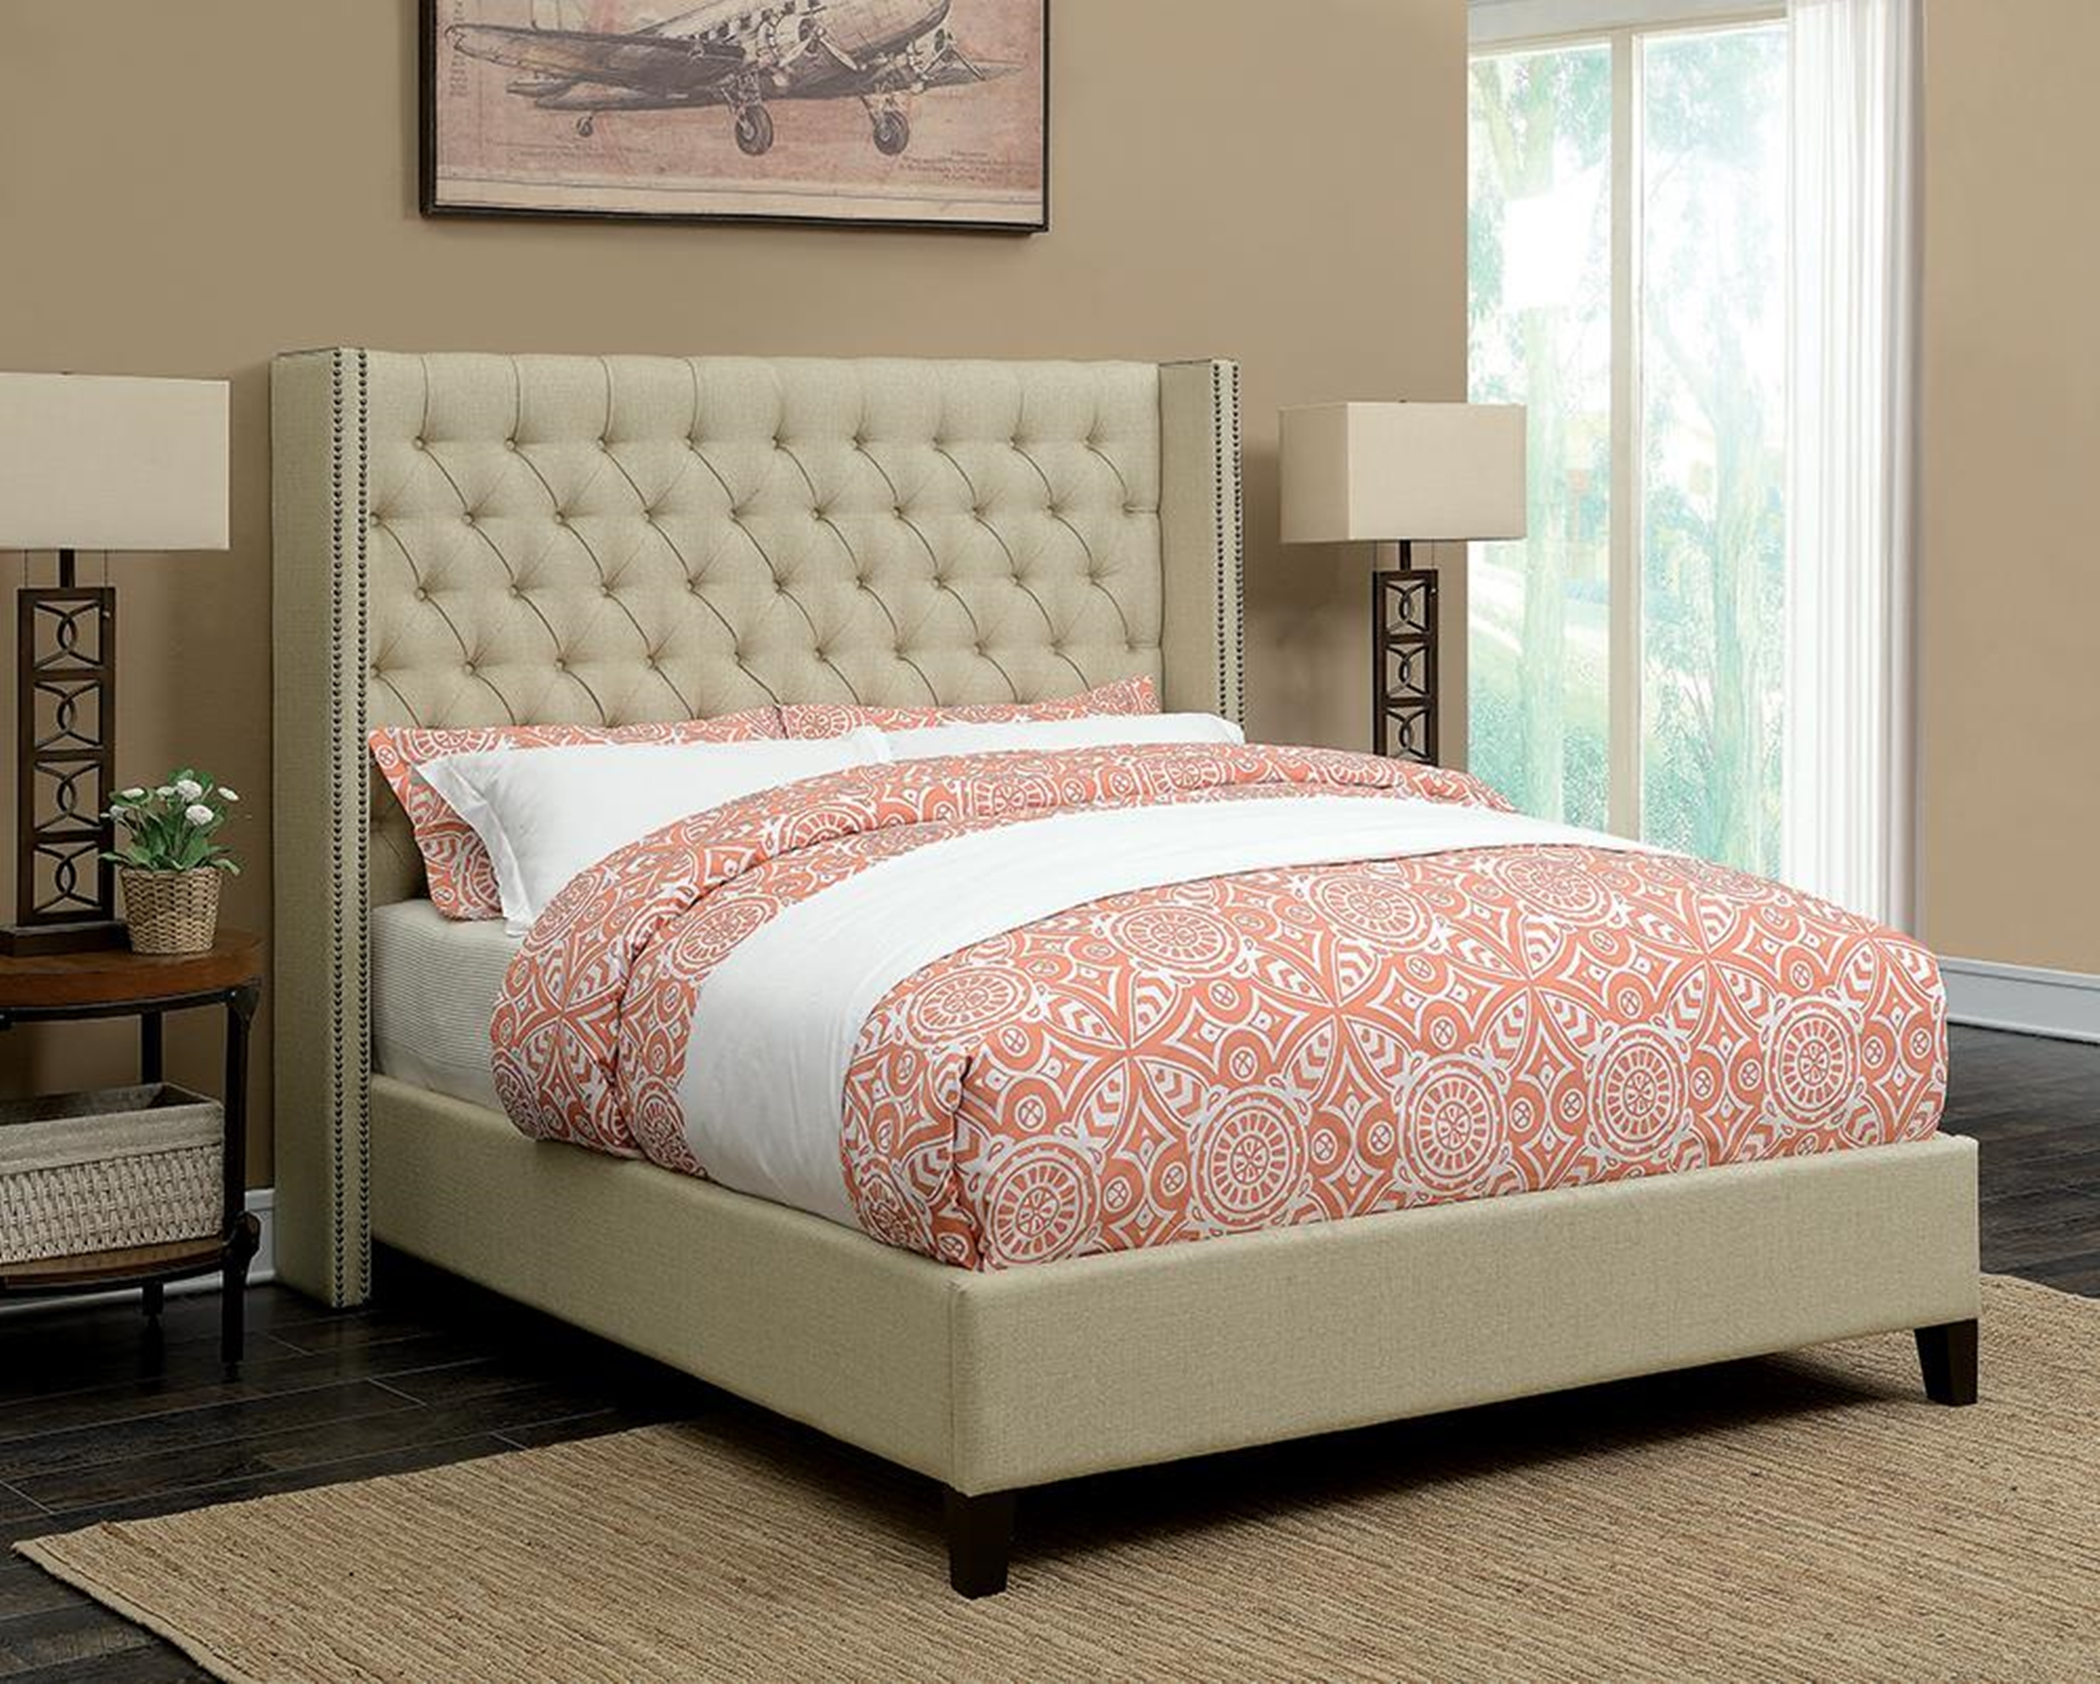 Benicia Beige Upholstered Cal. King Bed